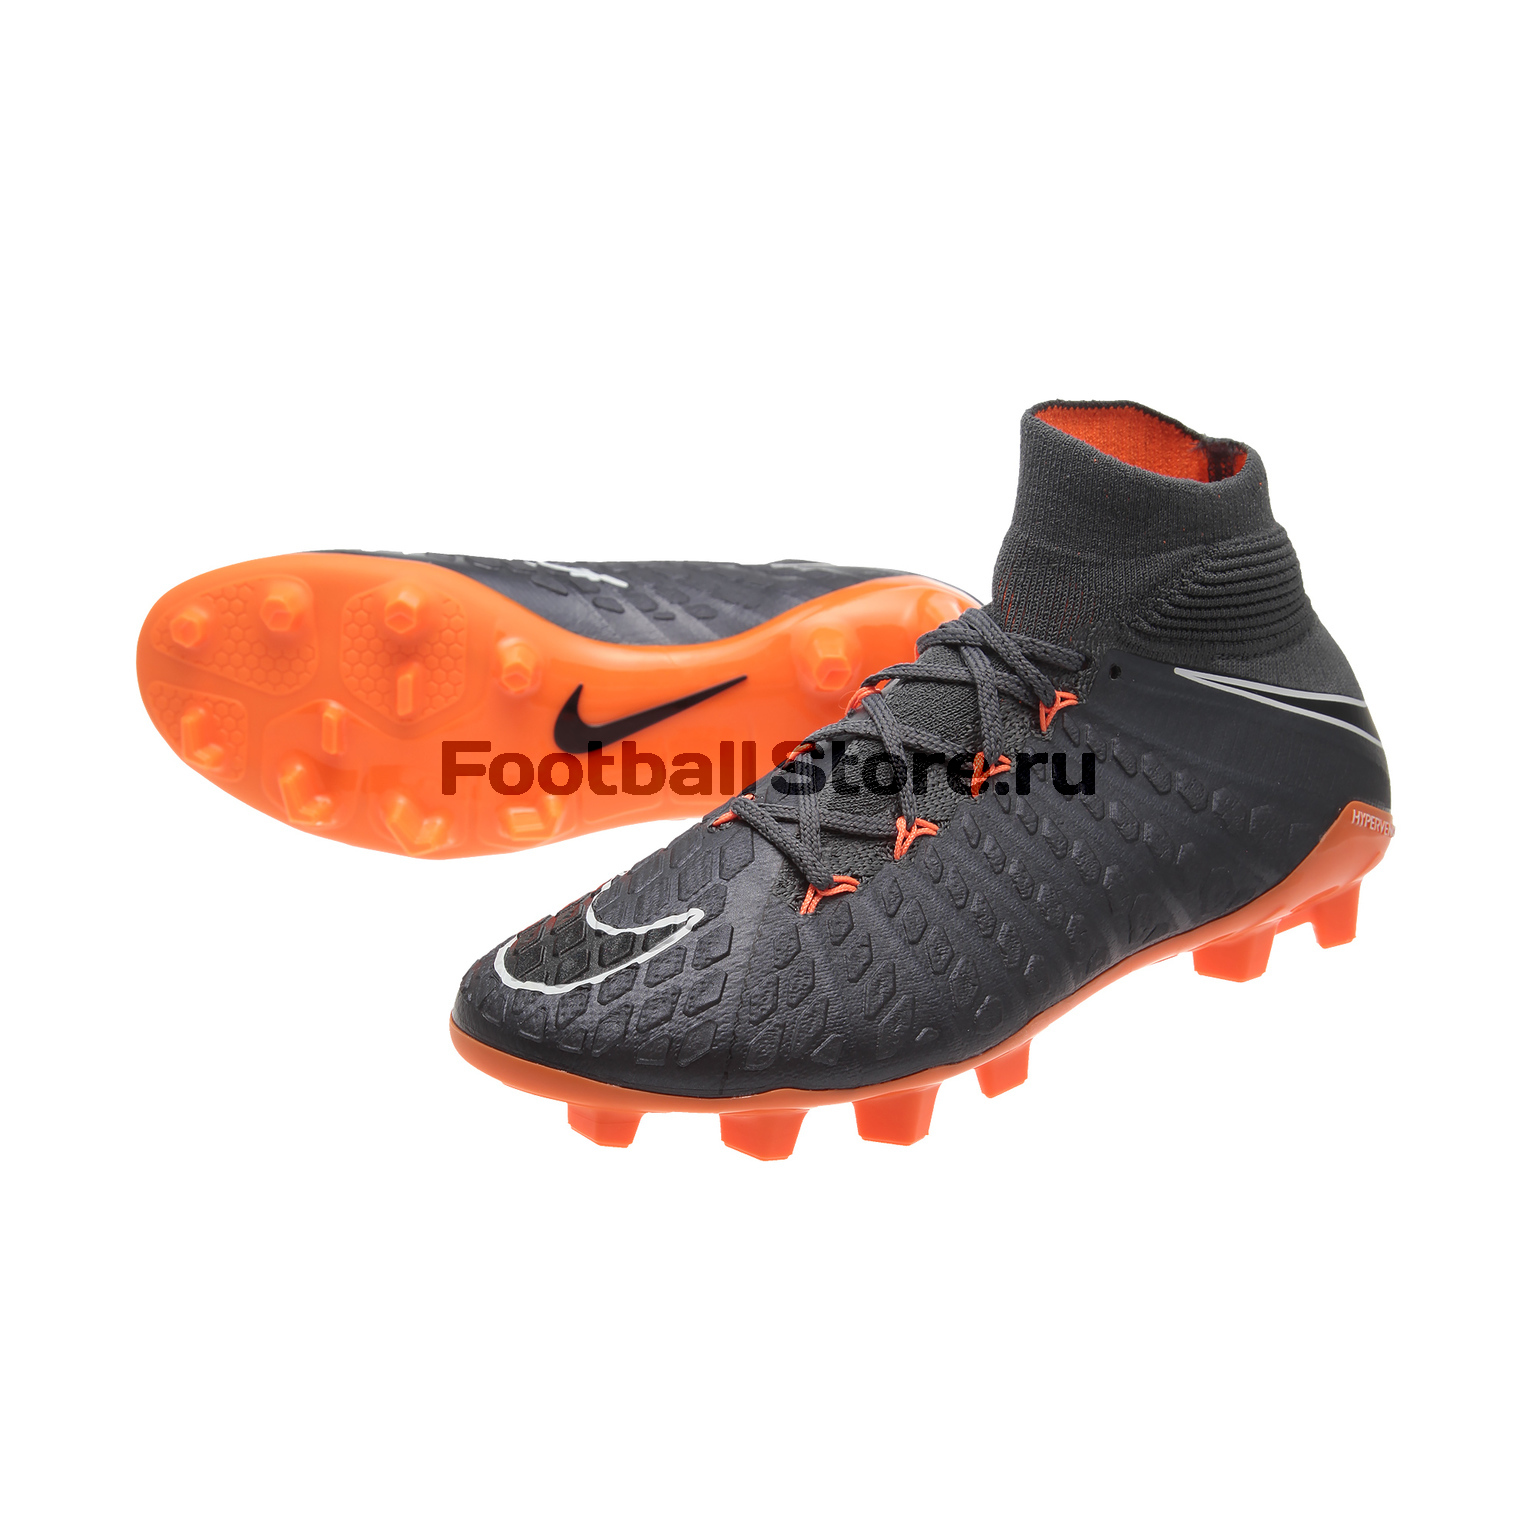 Бутсы Nike JR Phantom 3 Elite DF FG AH7292-081 бутсы nike hypervenom phantom iii club fg jrah7290 081